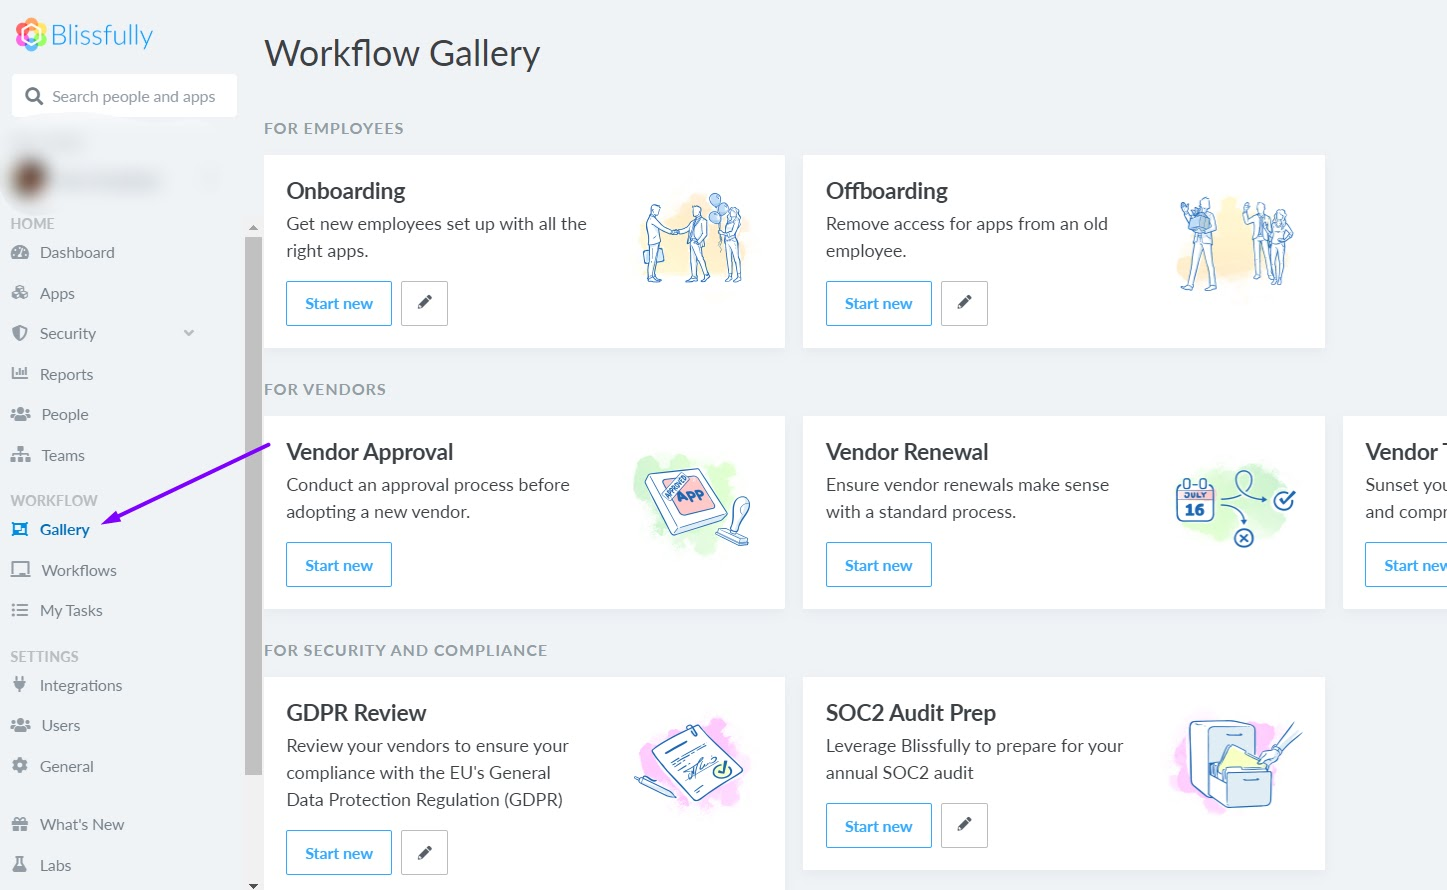 workflow gallery new